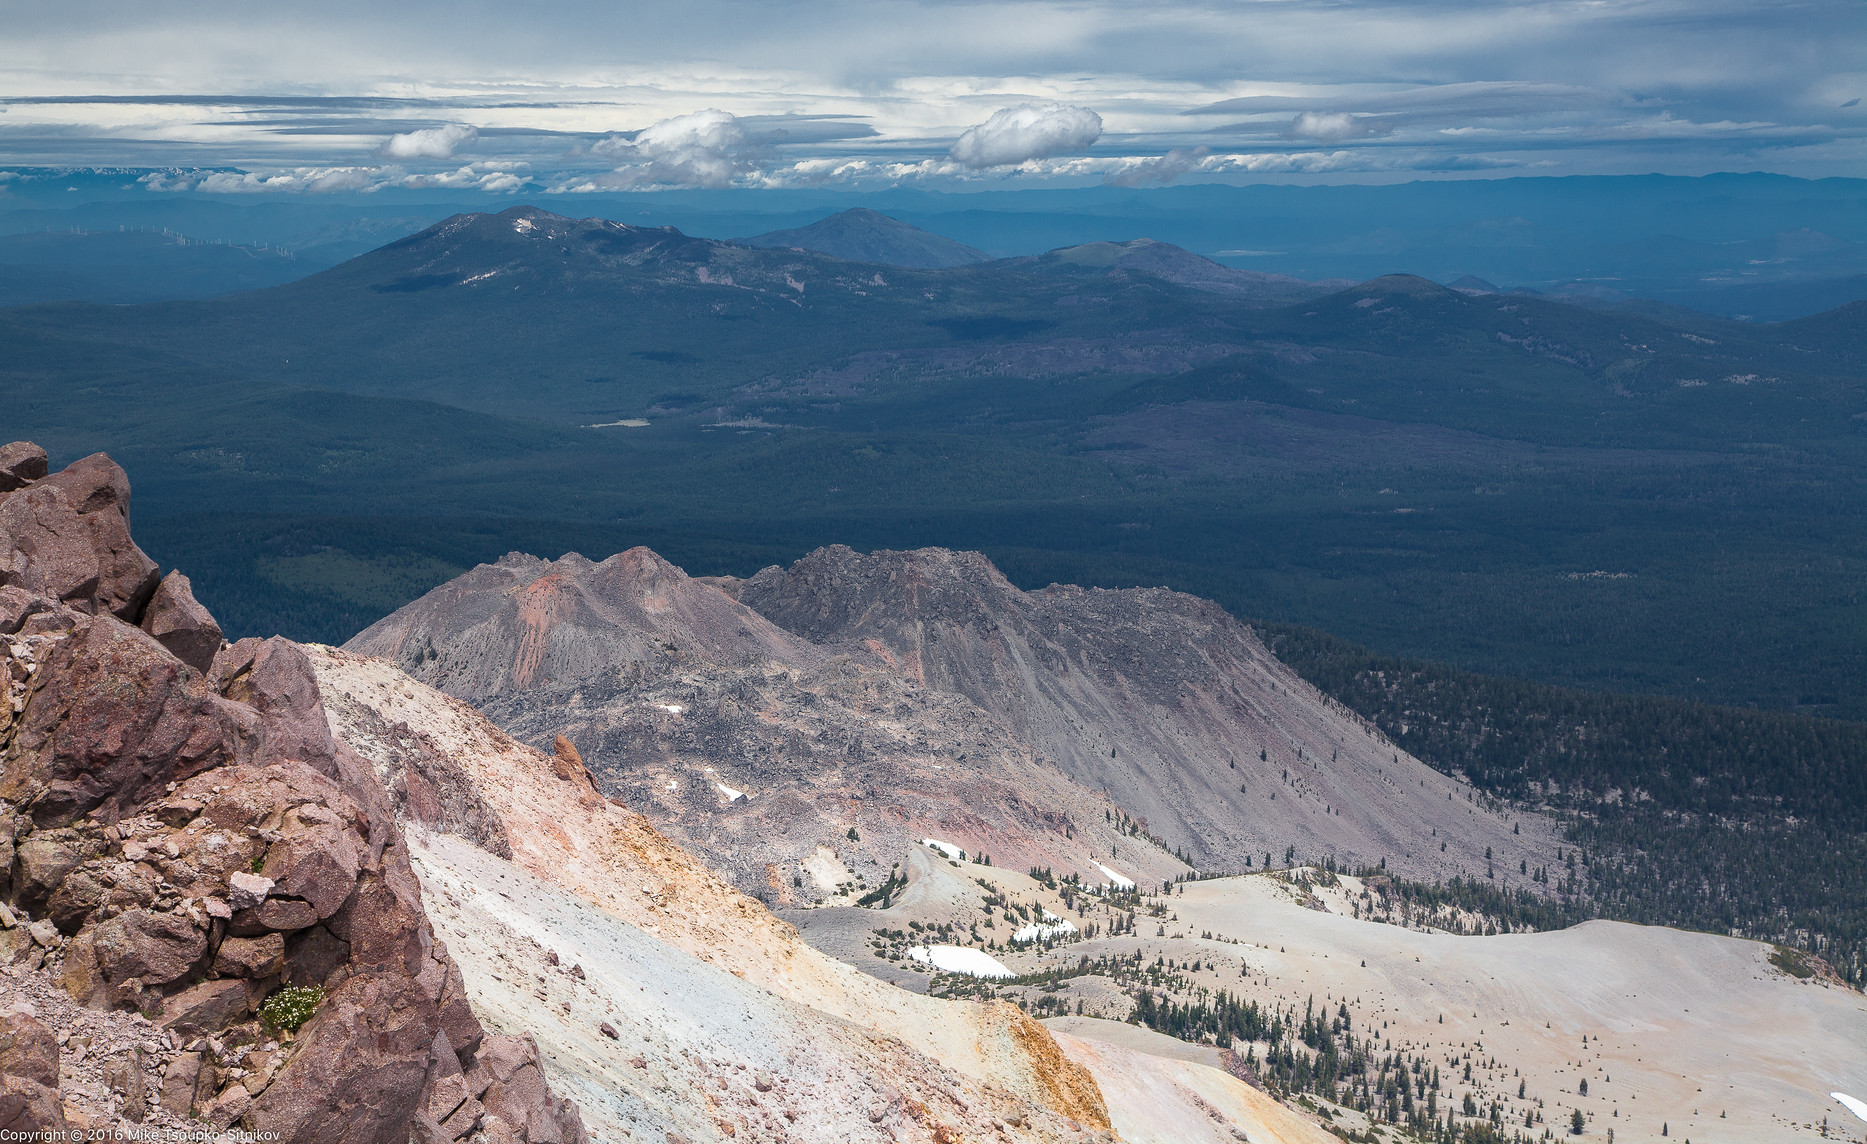 Lassen Peak. Looking eastwards from the summit.